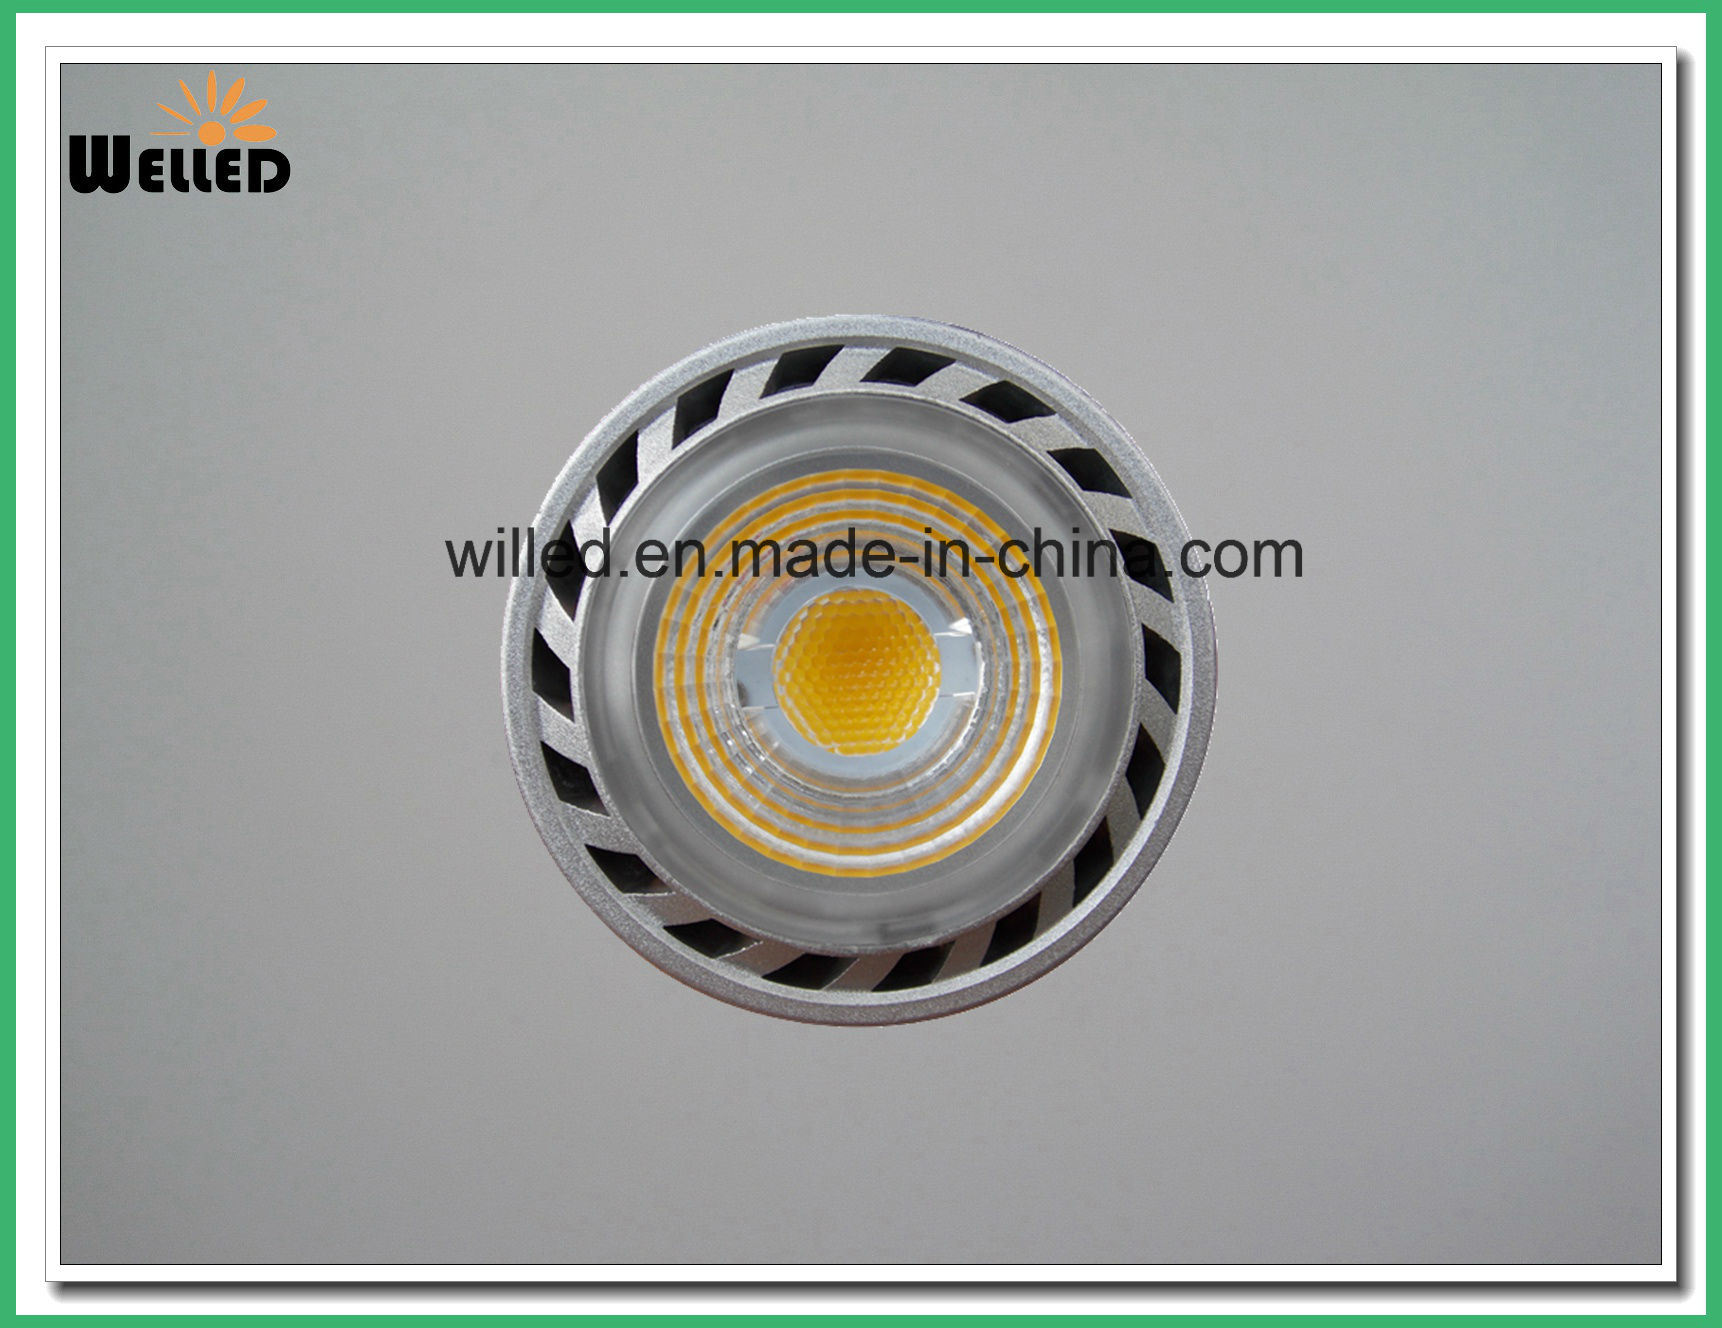 COB 5W LED Spot Light Bulb Jdre Spotlight E27 Ce RoHS Certification with 80lm/W CRI80 for Indoor Use